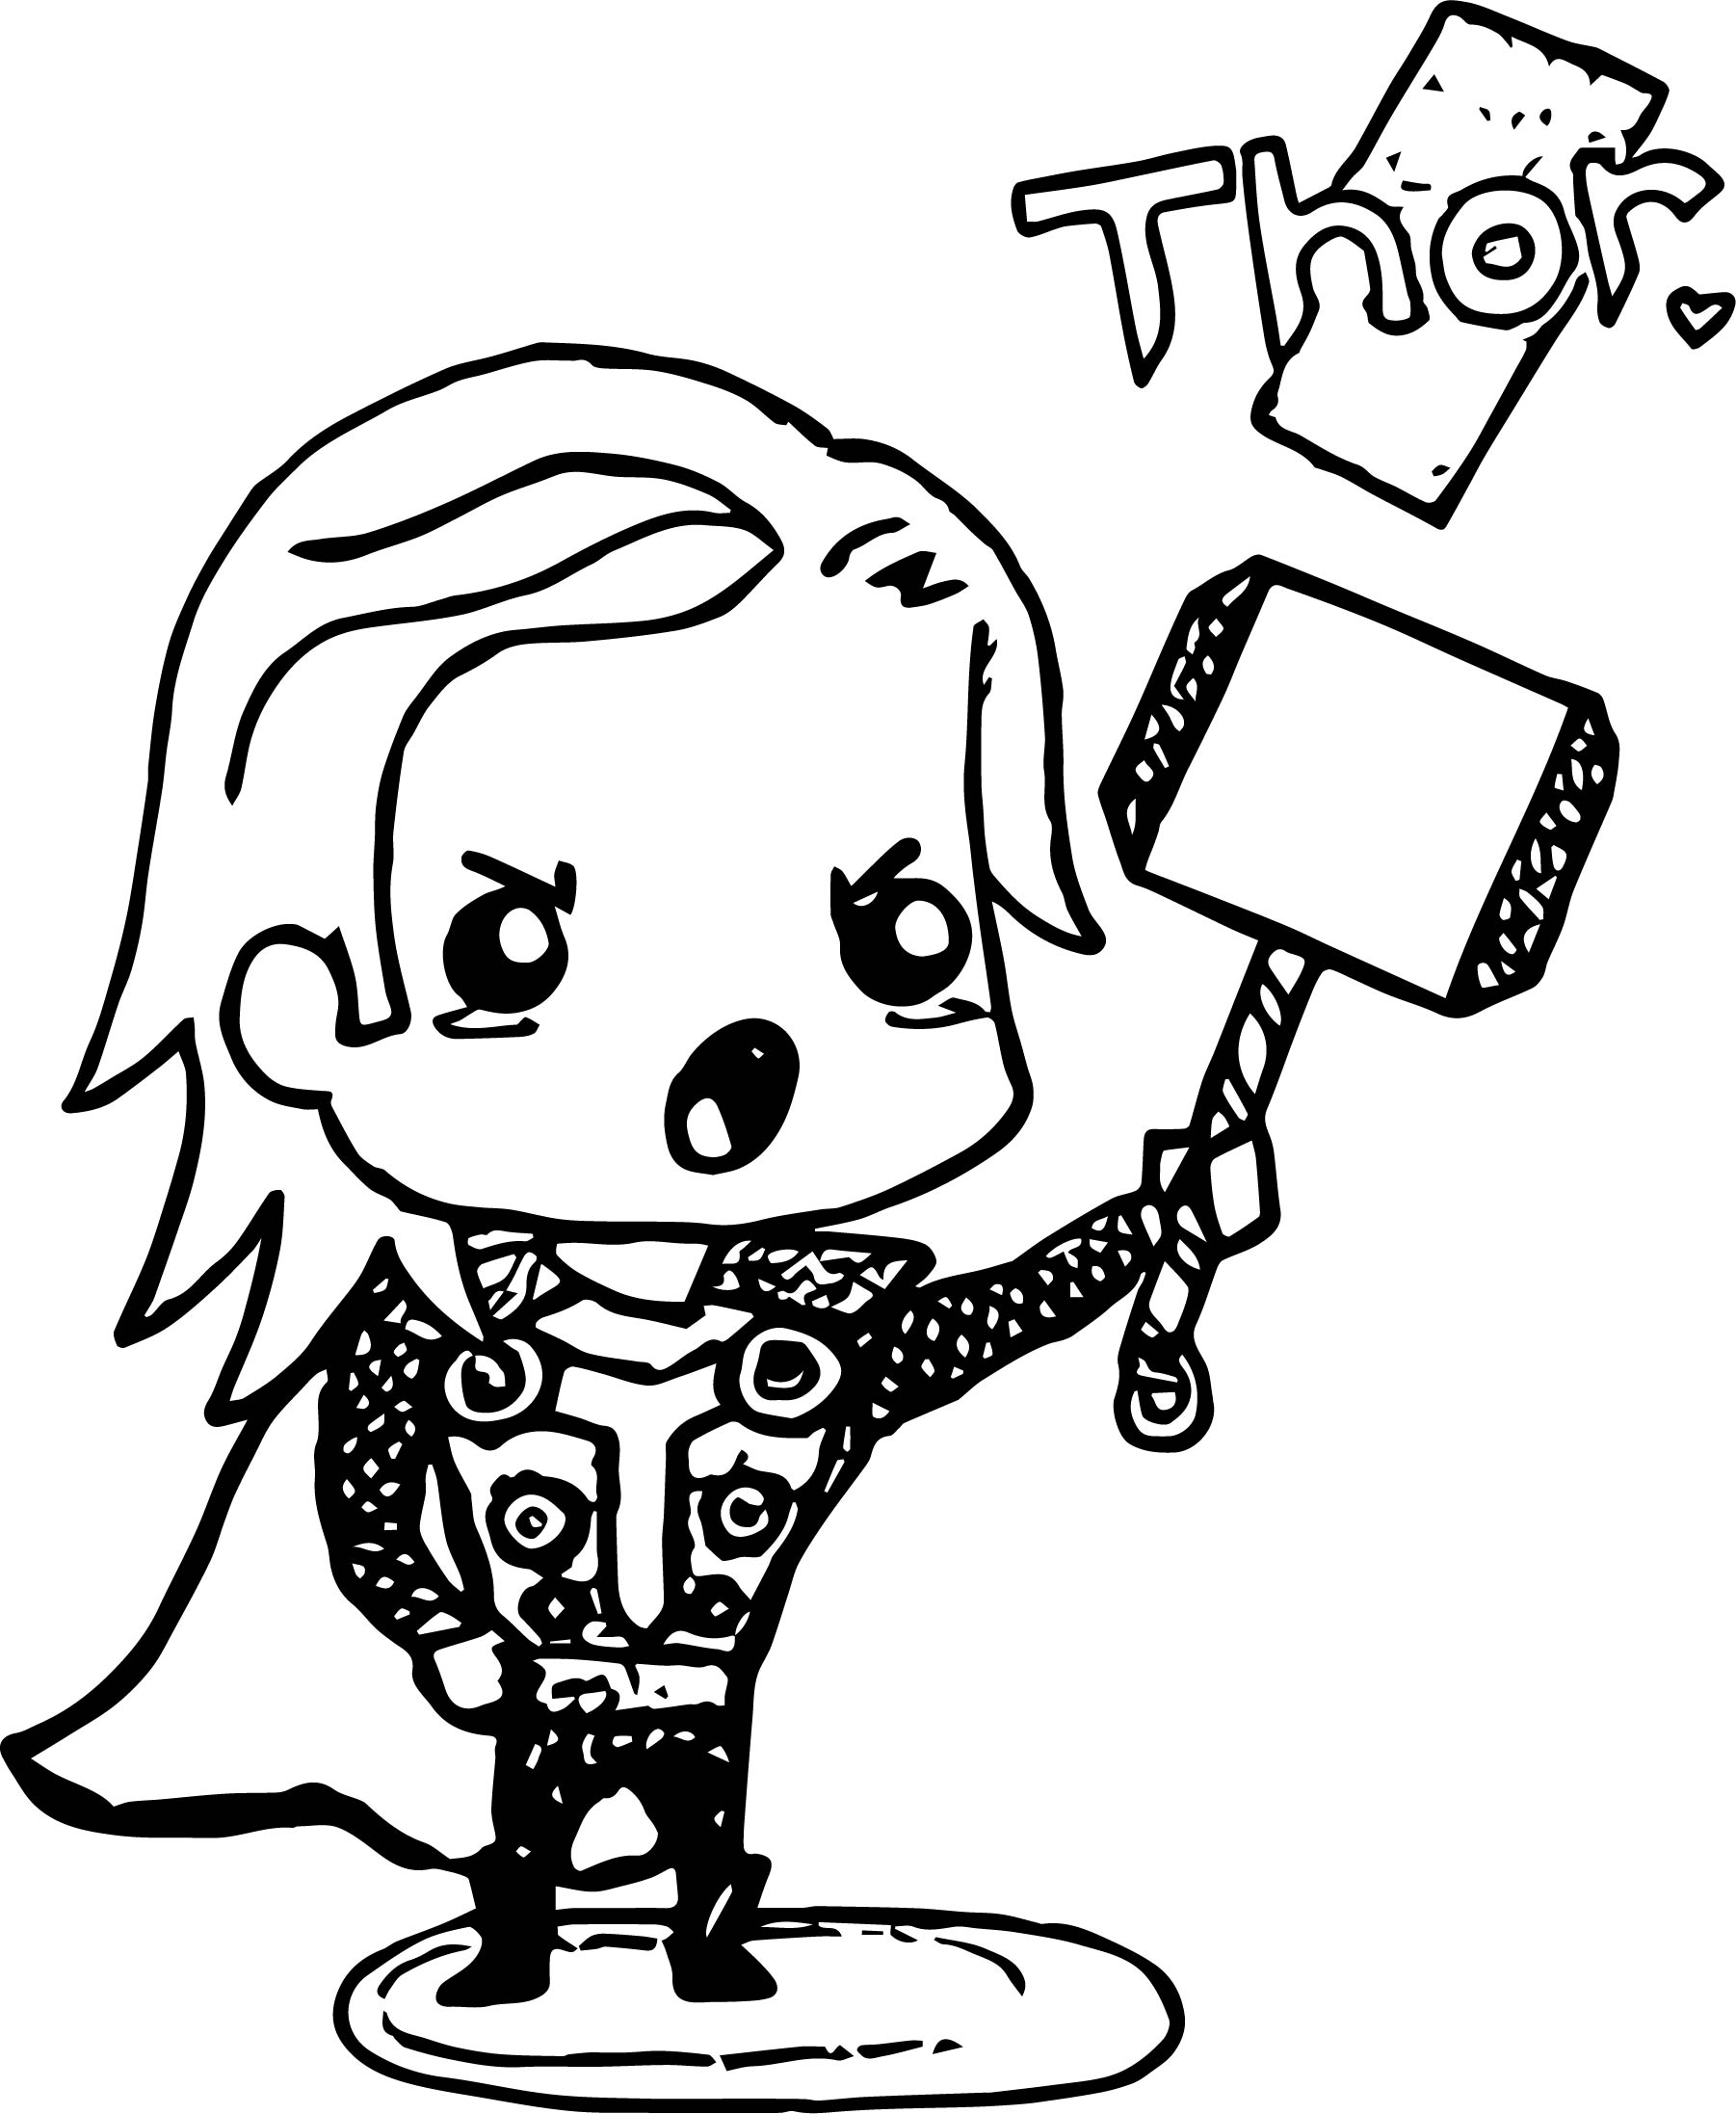 cute avengers coloring pages avengers coloring pages best coloring pages for kids avengers pages coloring cute